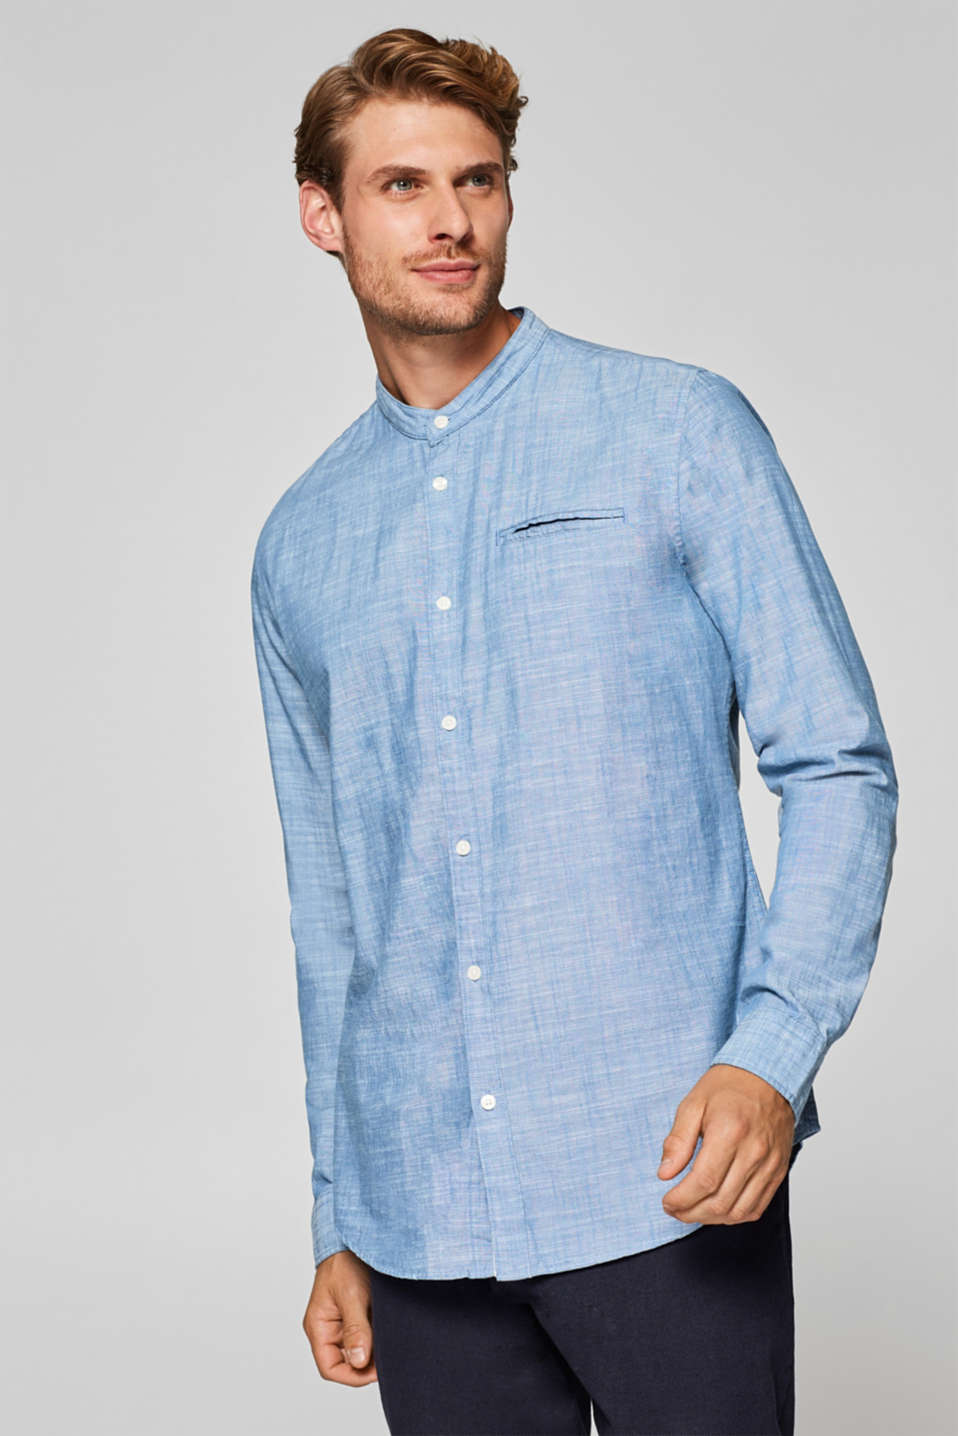 Esprit - Chambray shirt with a band collar, 100% cotton